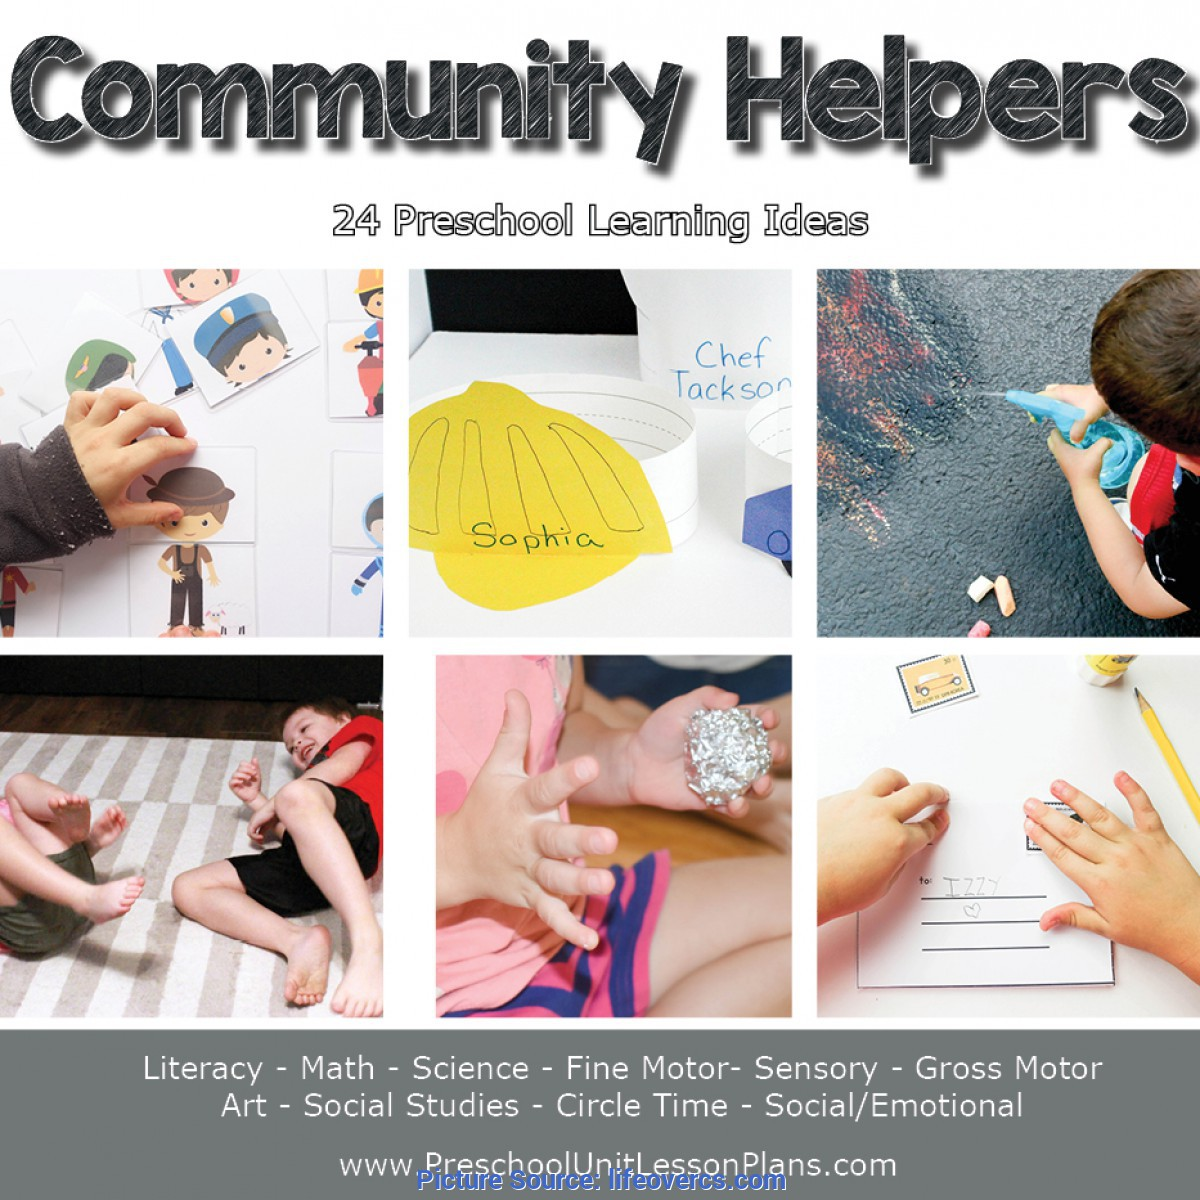 Complex Sample Lesson Plan In Community Helpers Preschool Lesson Plans Year Long Bundle - Life Ove